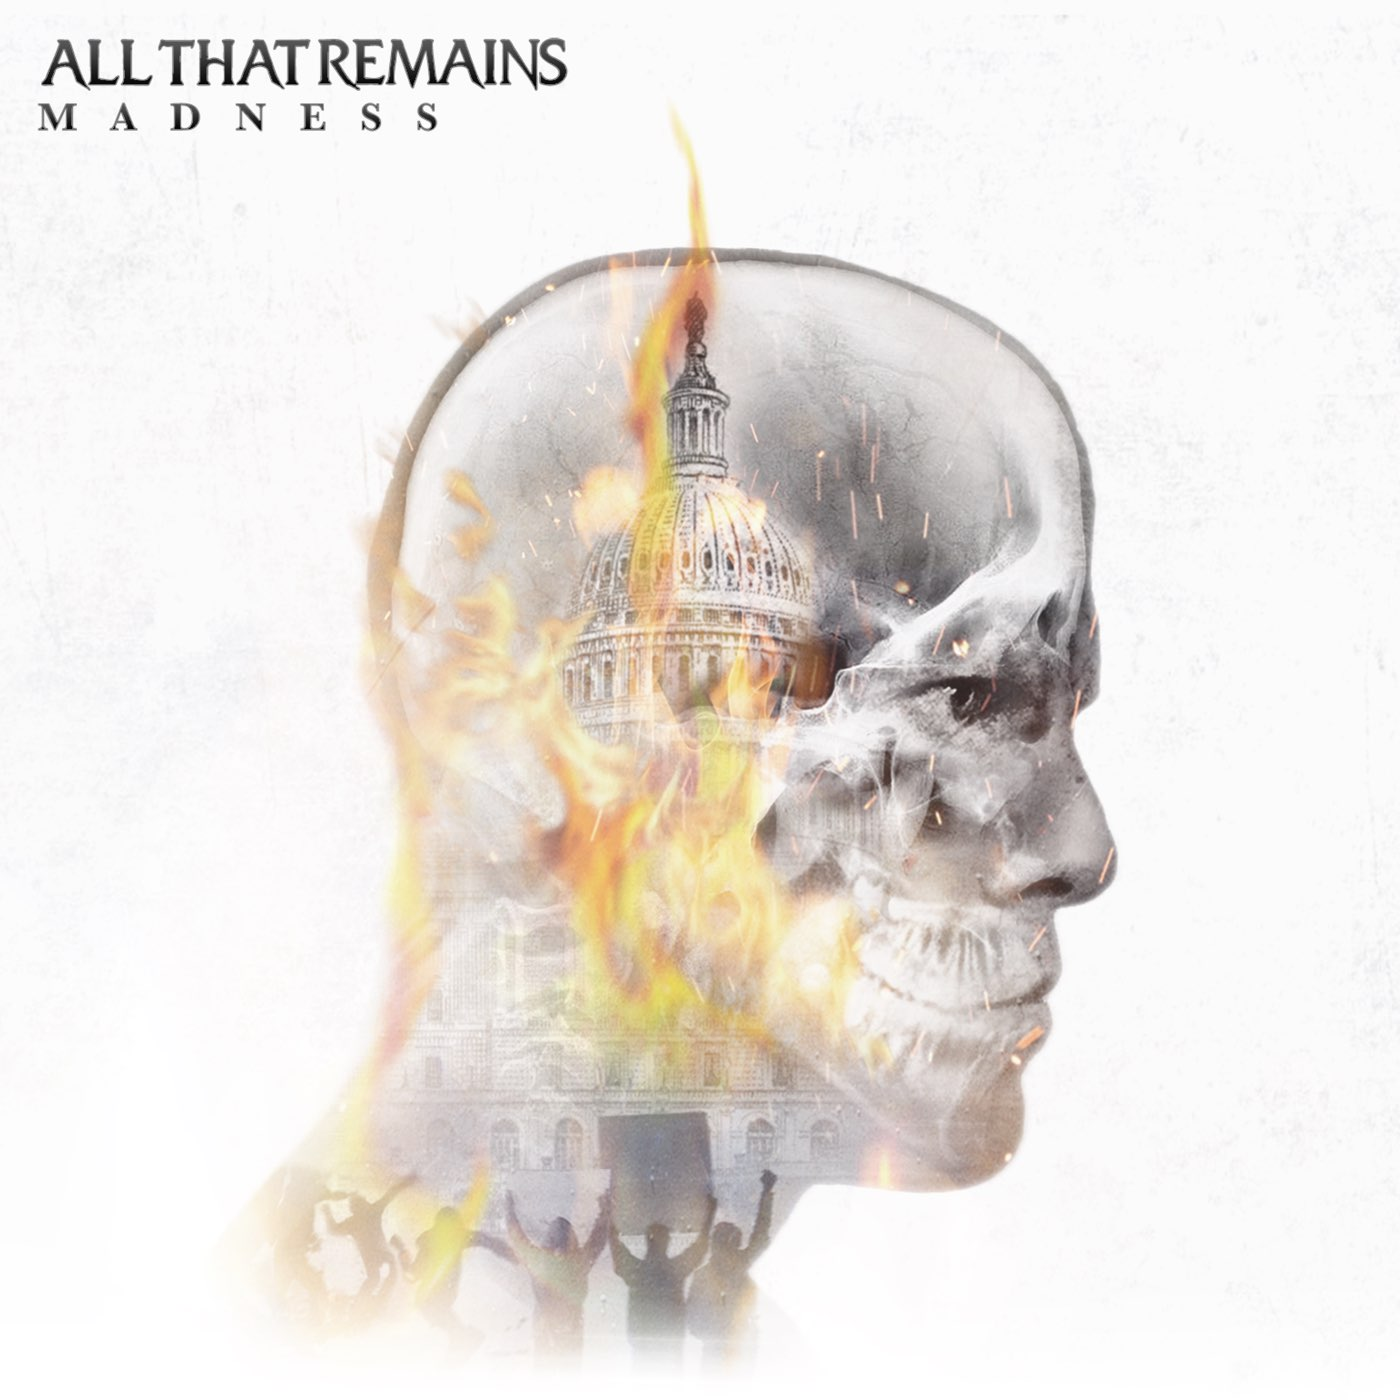 All That Remains - Madness [single] (2017)